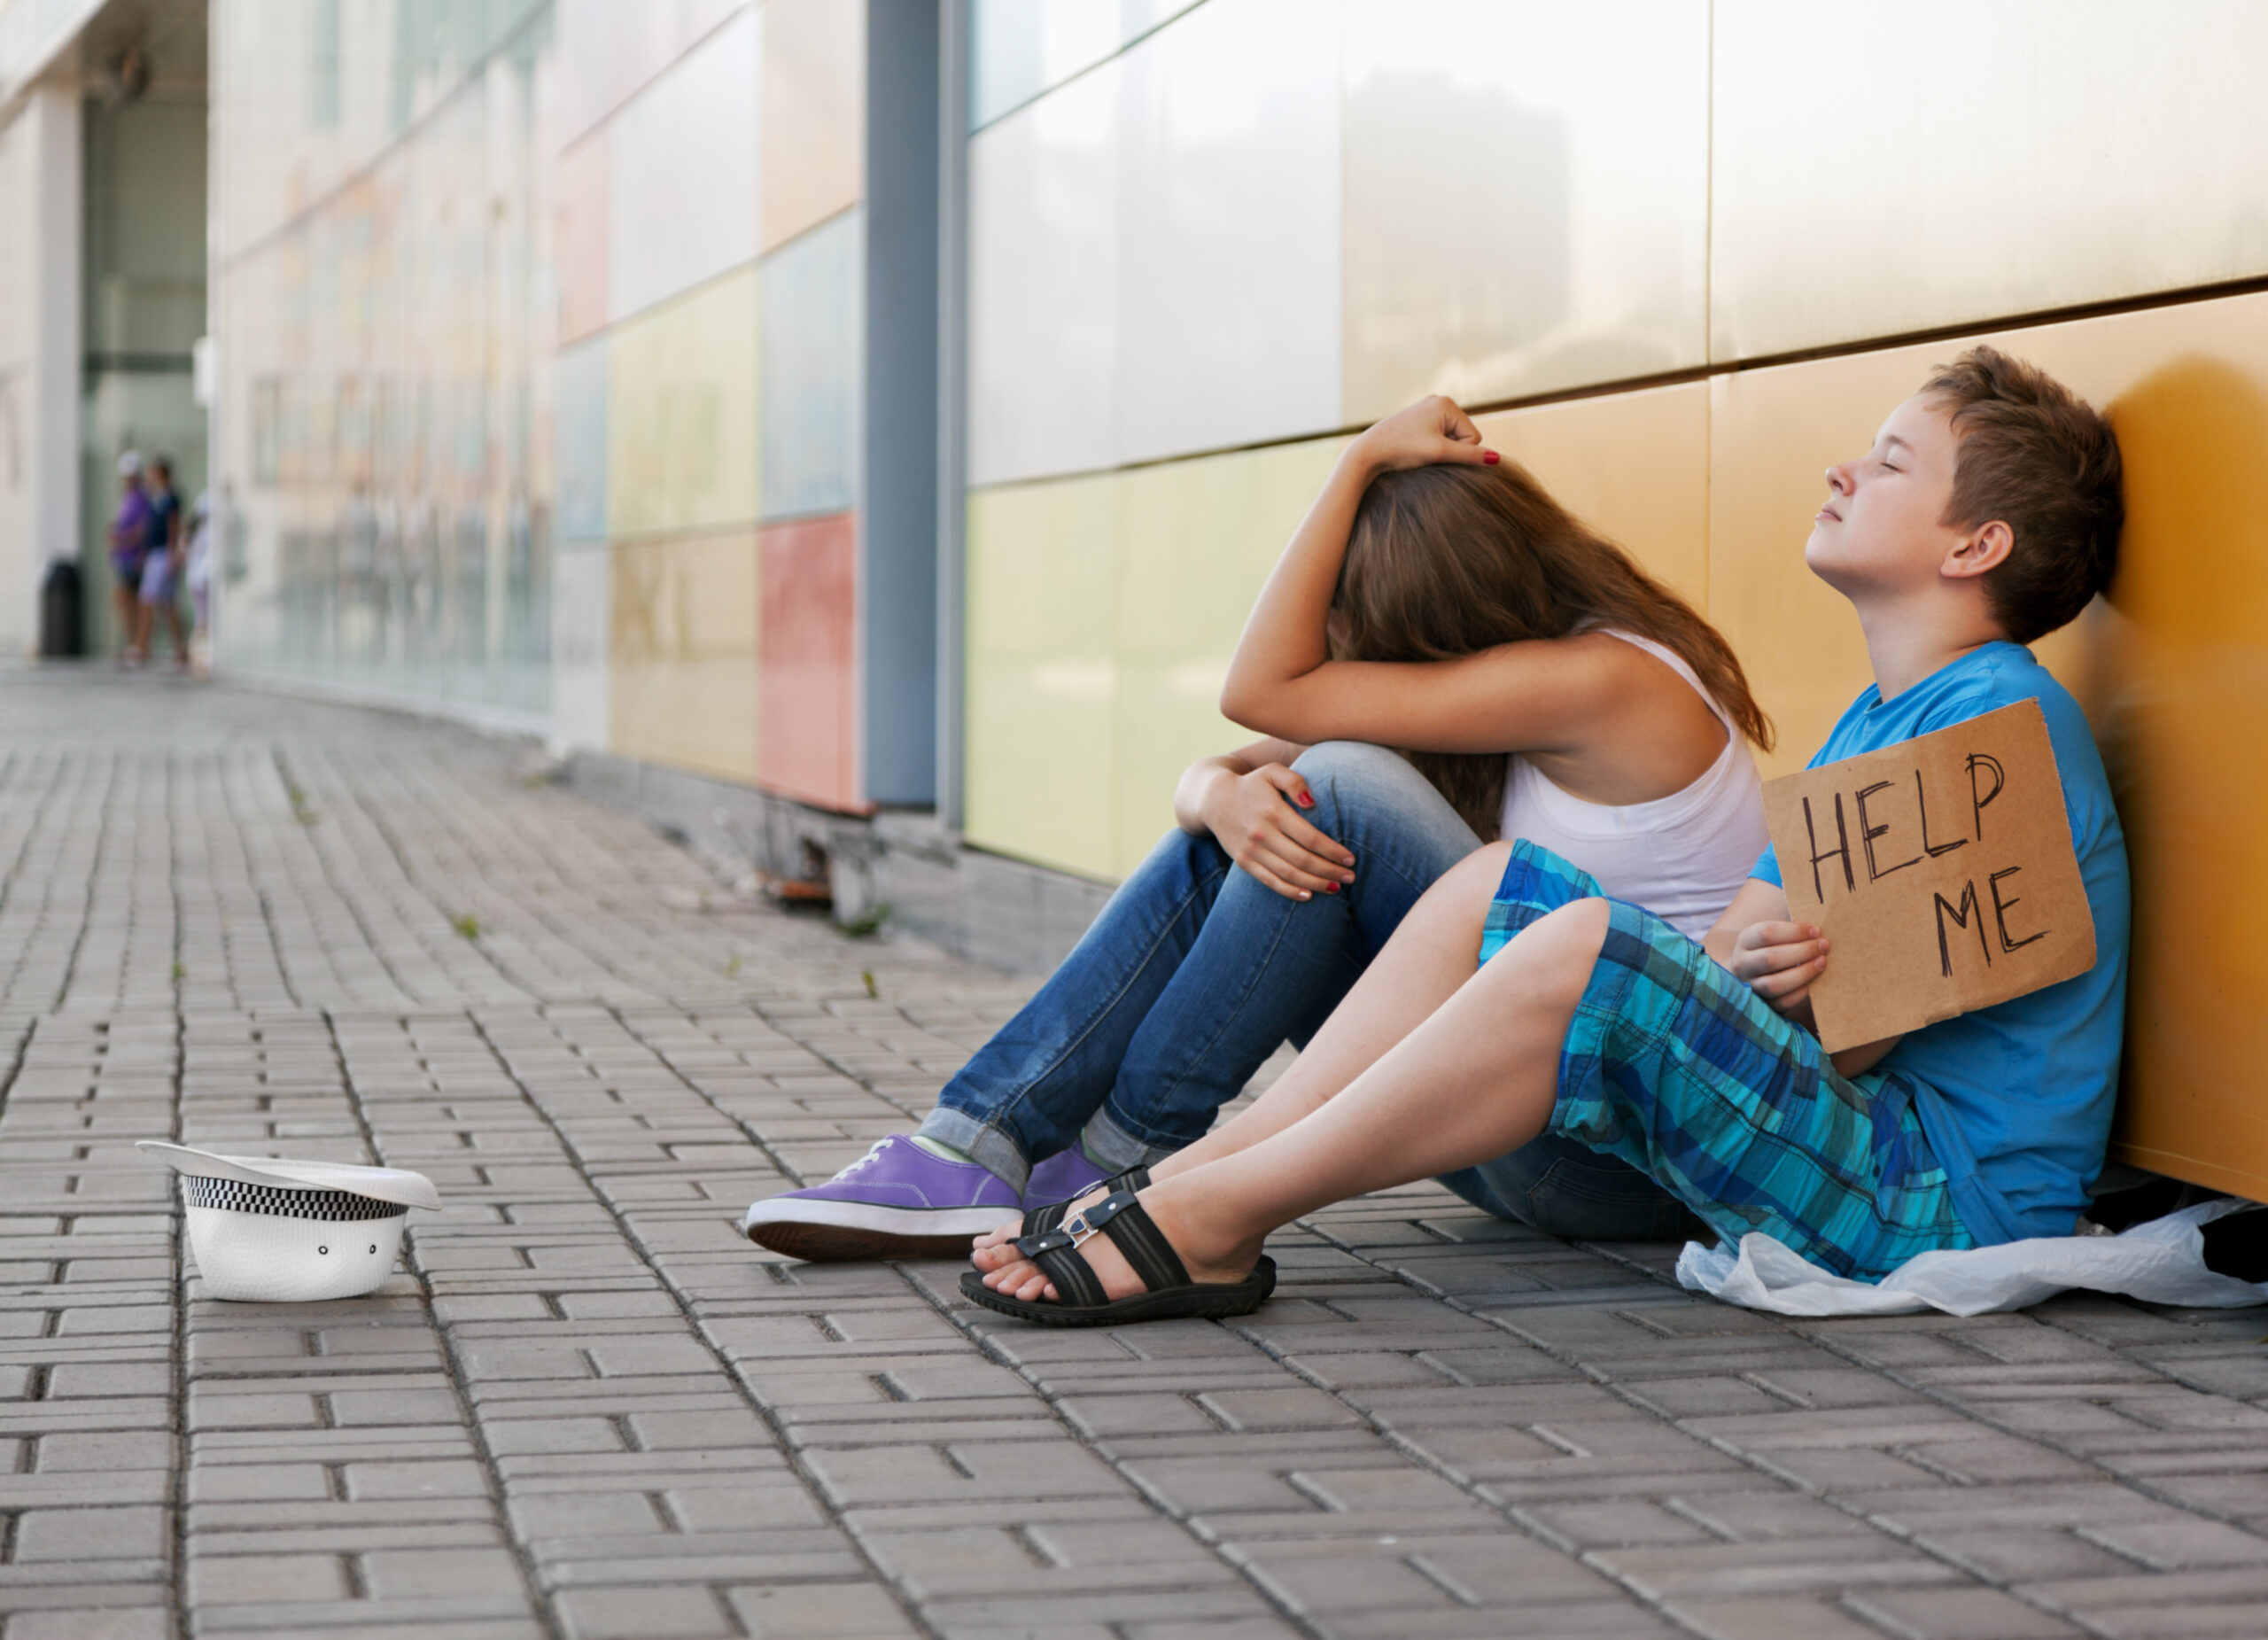 https://secureservercdn.net/104.238.71.109/e96.36f.myftpupload.com/wp-content/uploads/2020/06/vecteezy_two-young-people-begging-due-to-homelessness_854579-scaled.jpg